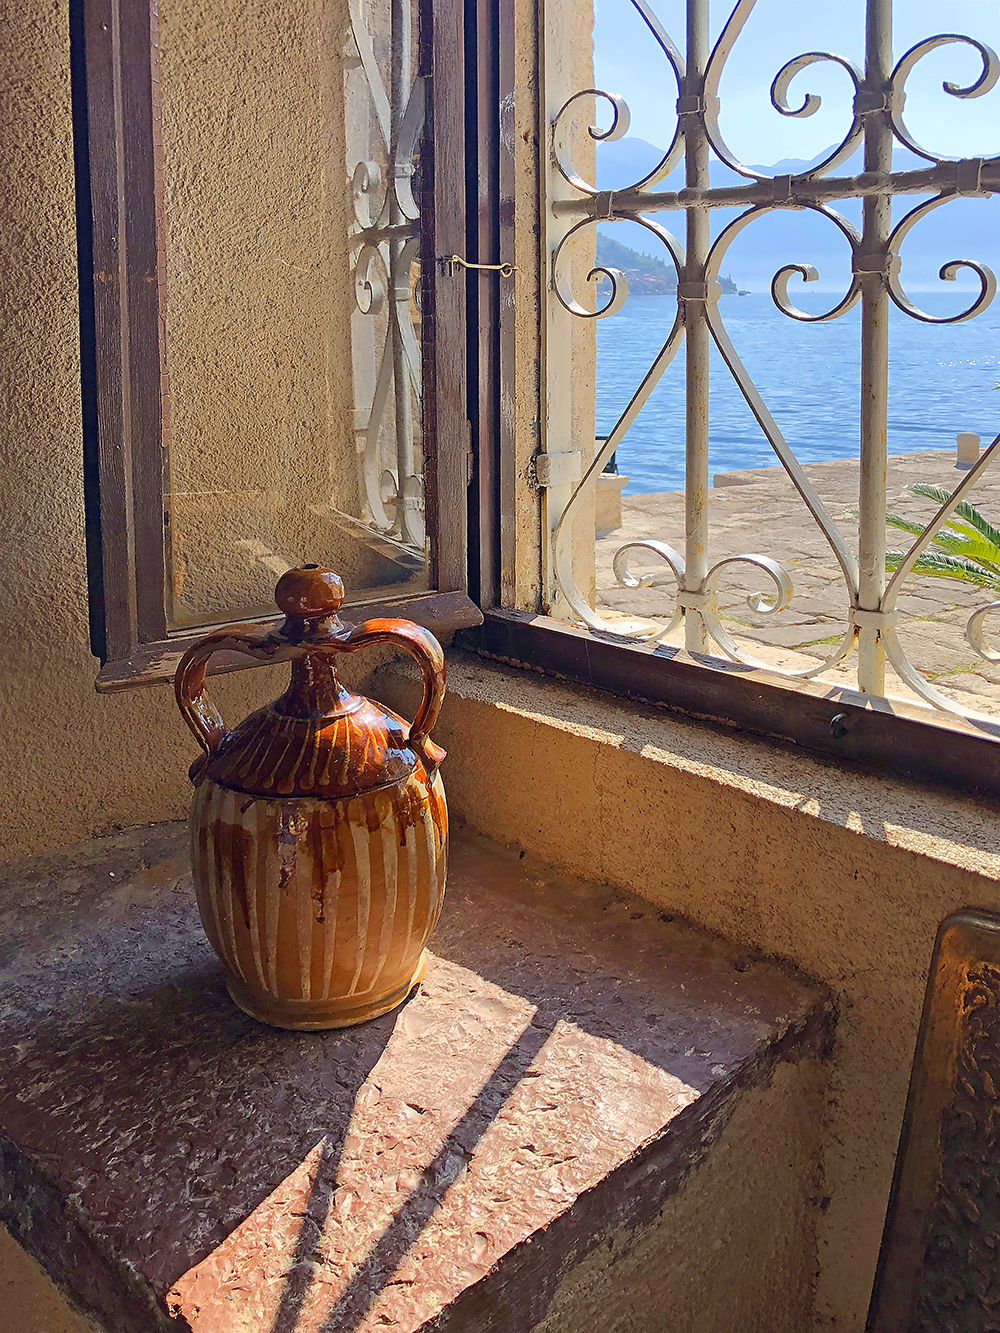 Ancient container on table next to window in church in Montenegro Architectural Photography